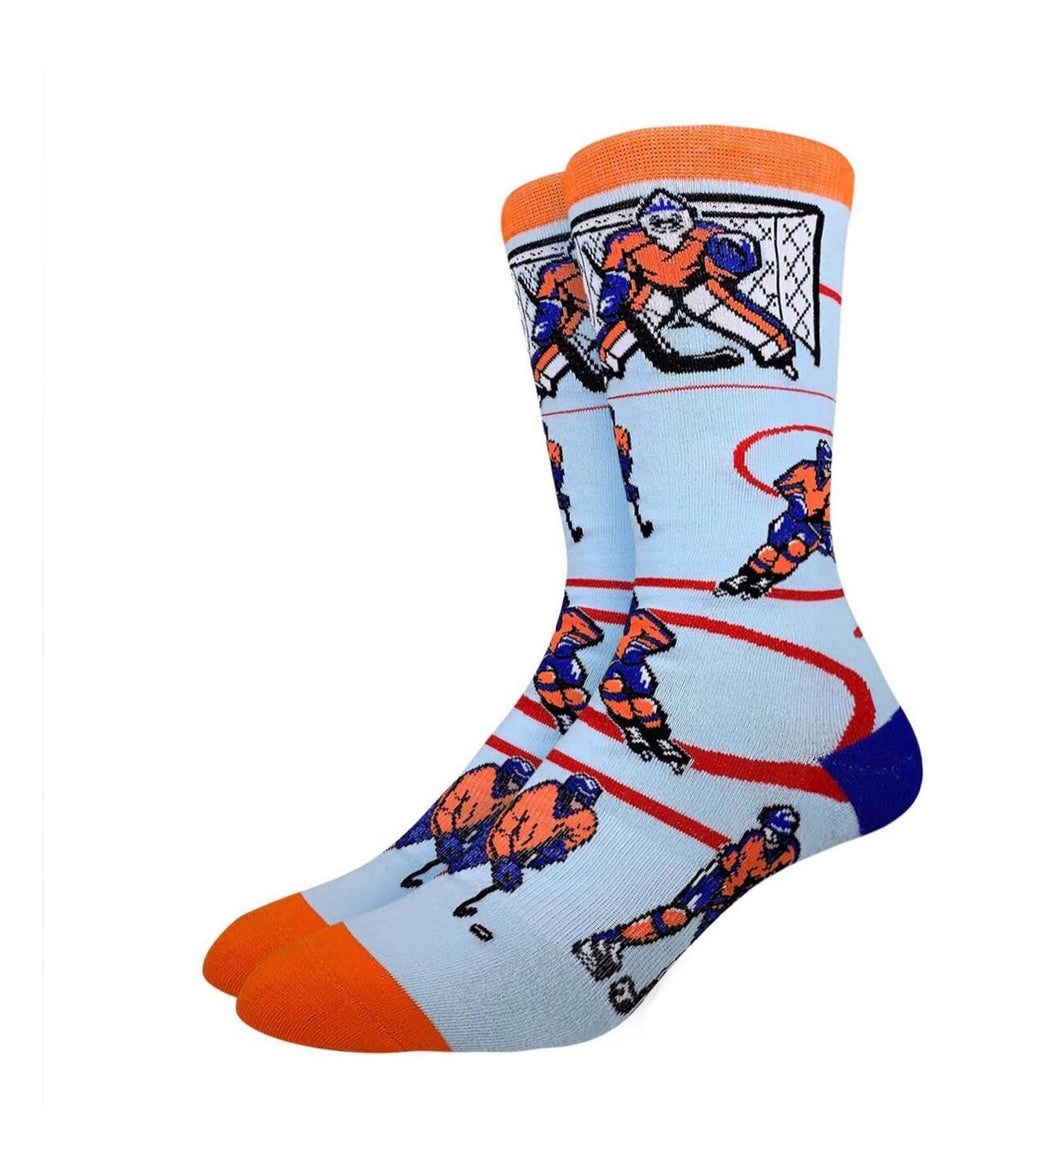 Men's Hockey Orange Blue Socks